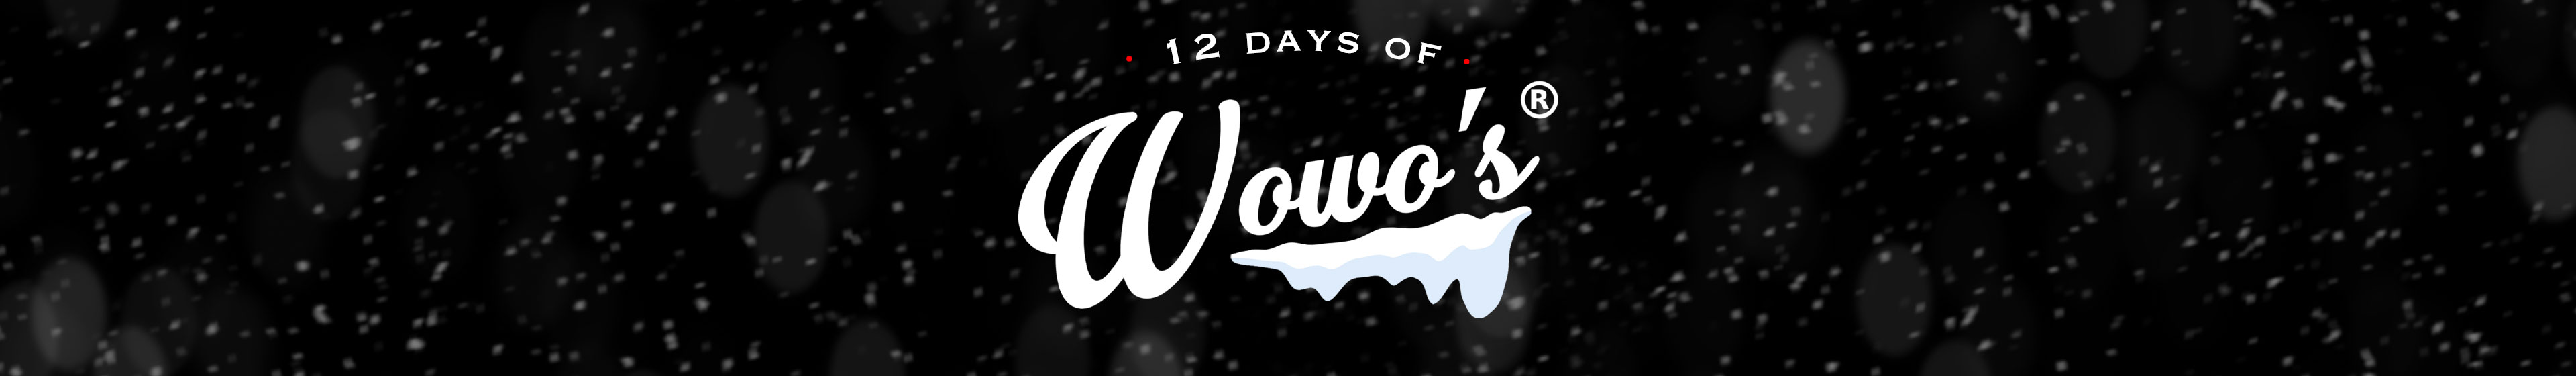 12-days-of-wowos-page-banner.jpg